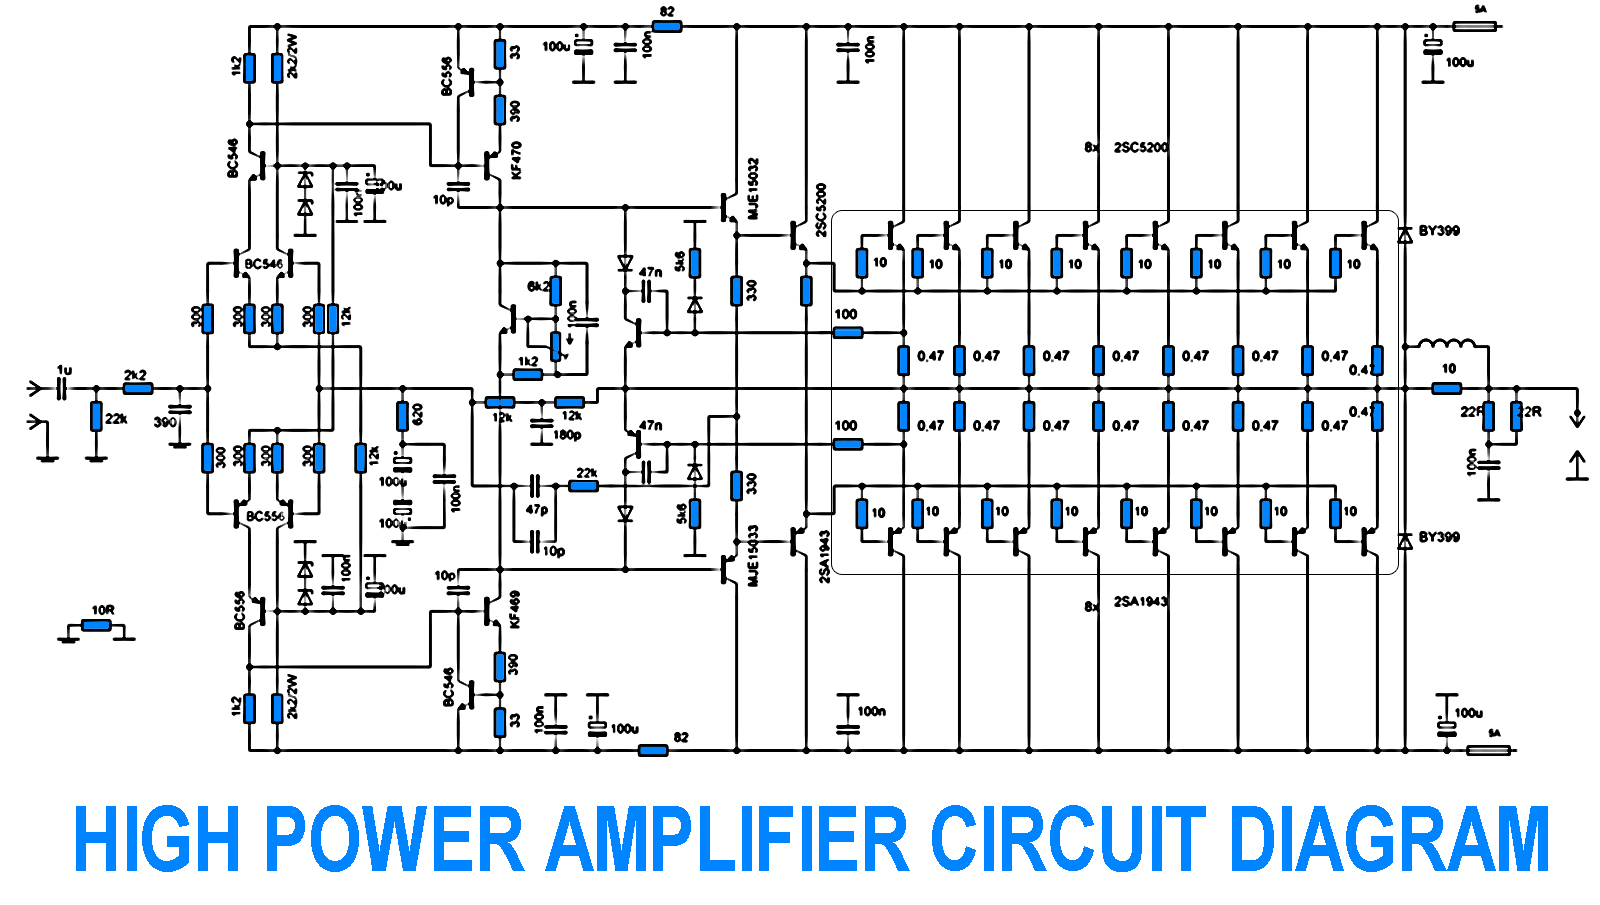 Audio Amplifier Circuit Diagram Transistor How To Make A Sixtiesstyle 40w 700w Power With 2sc5200 2sa1943 Electronic